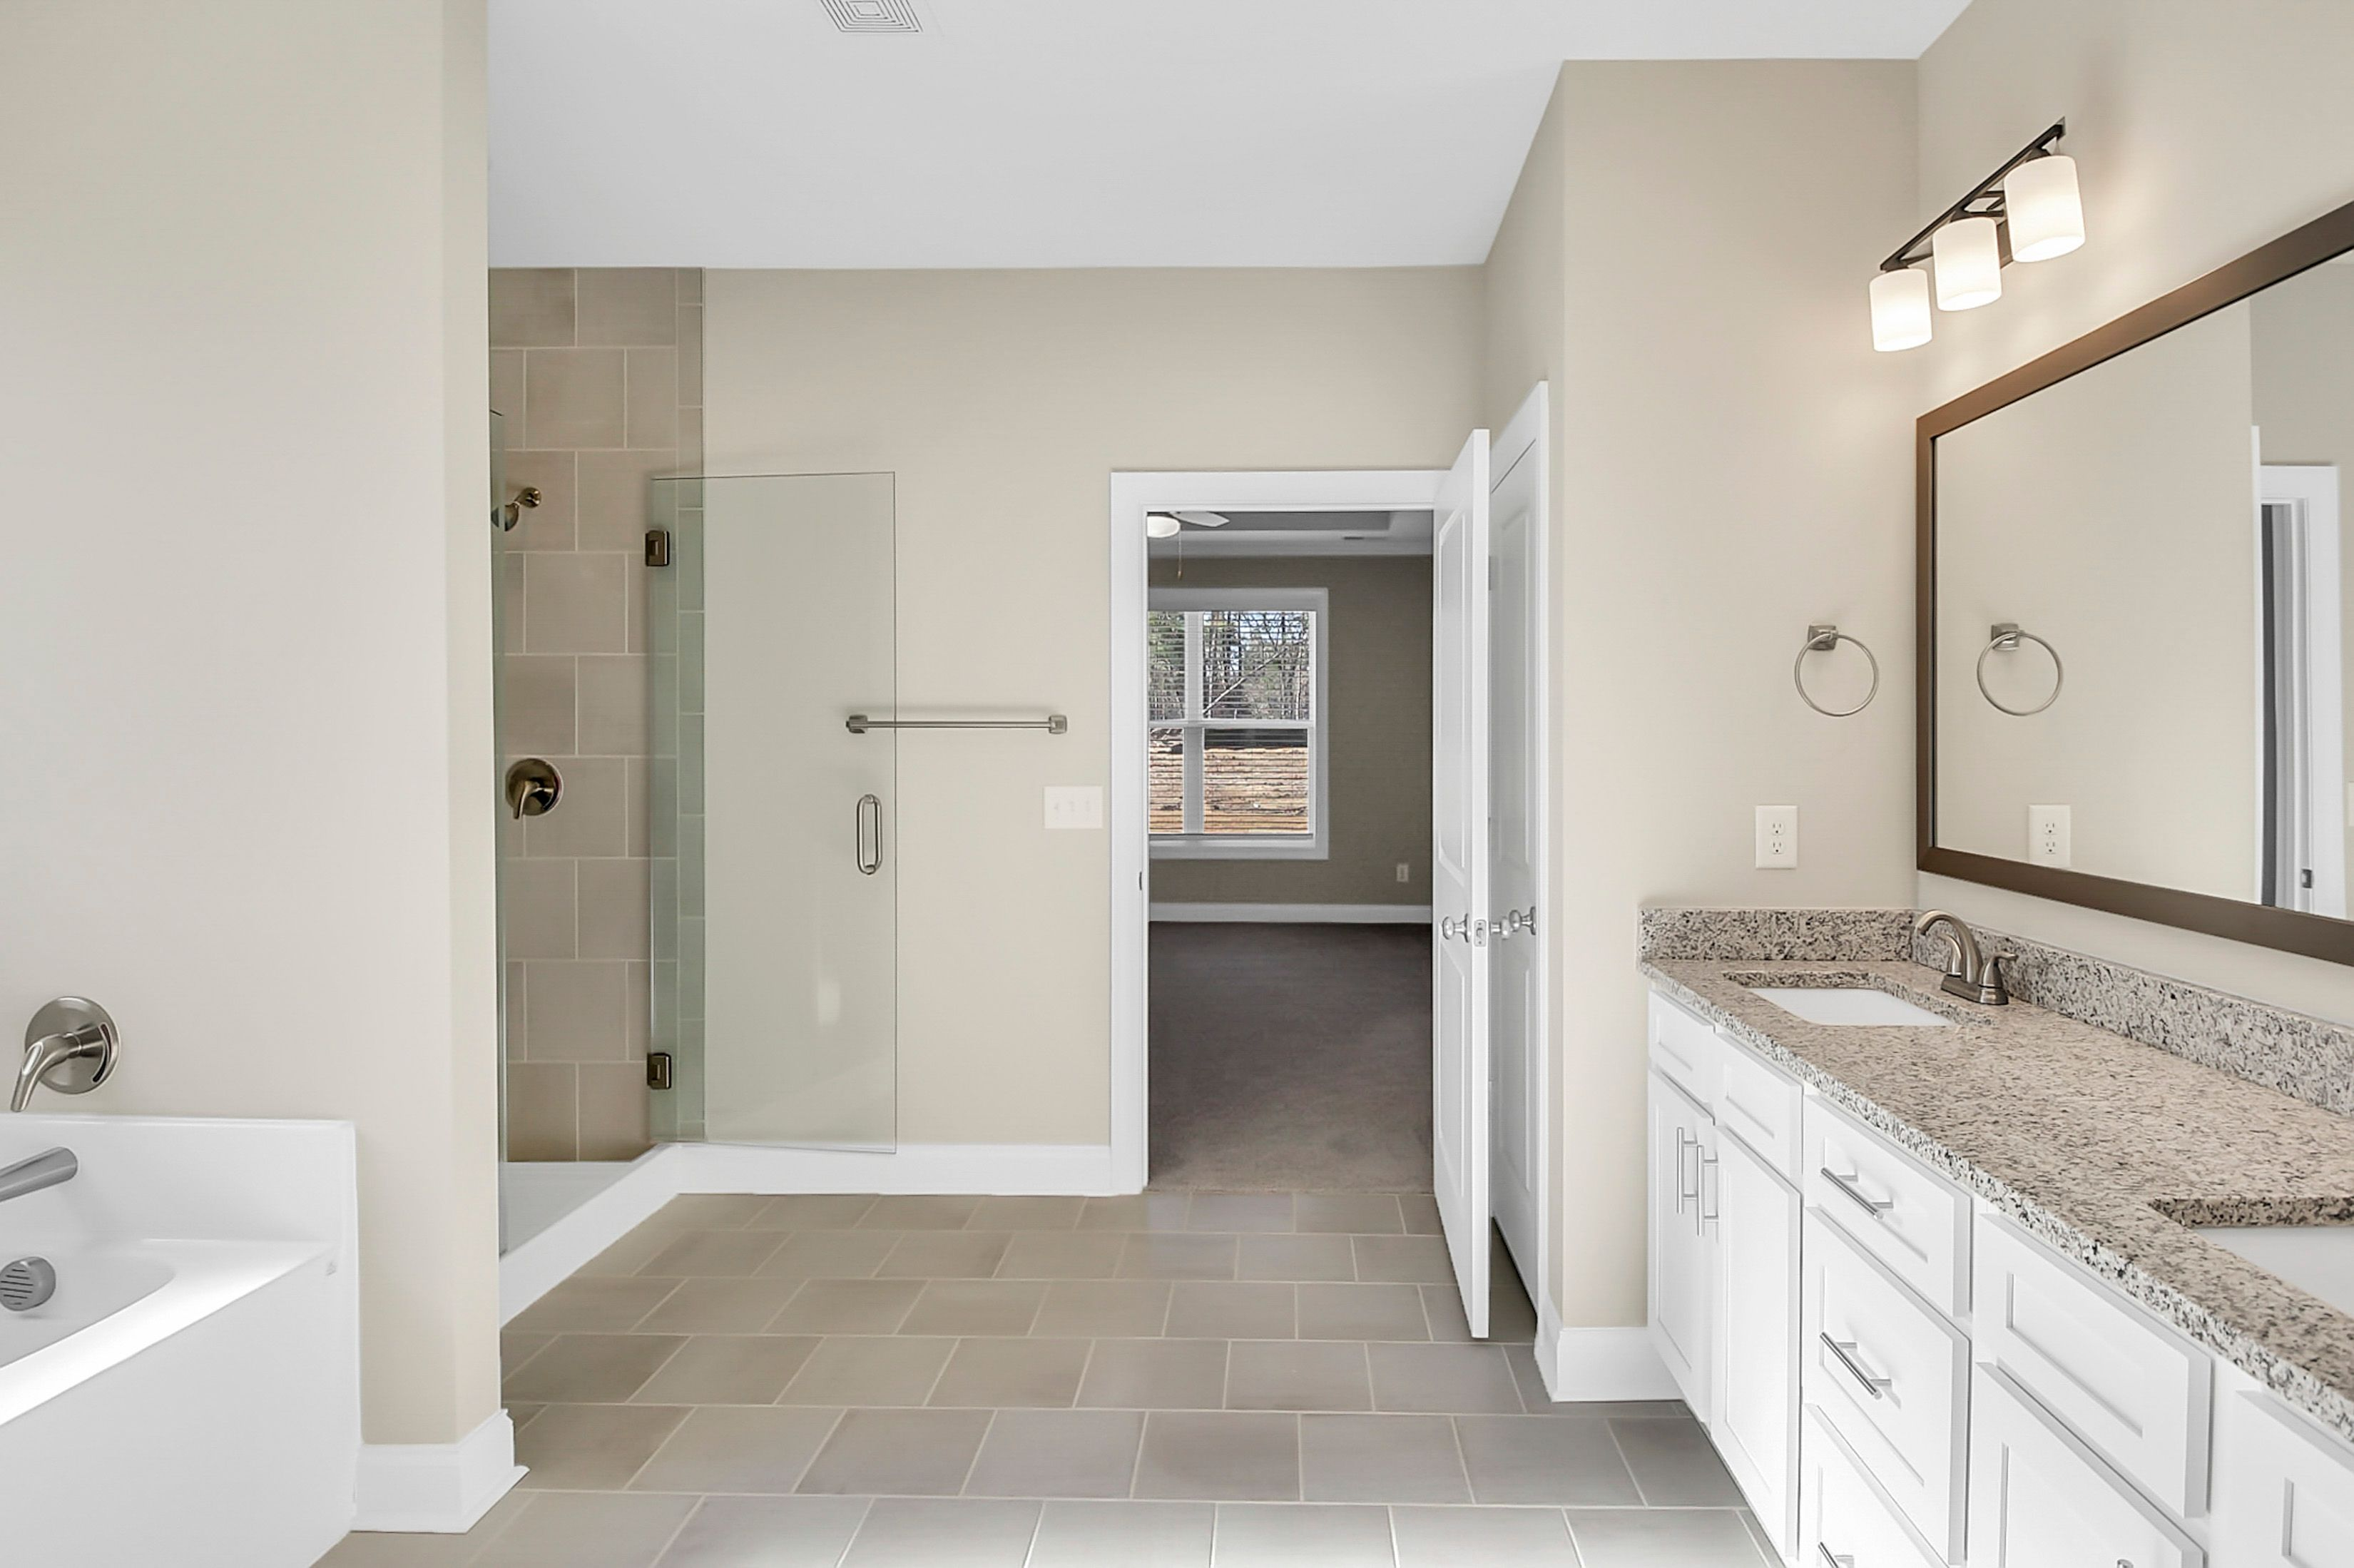 Bathroom featured in the Shorewood- Designer Series By Executive Construction Homes in Columbia, SC